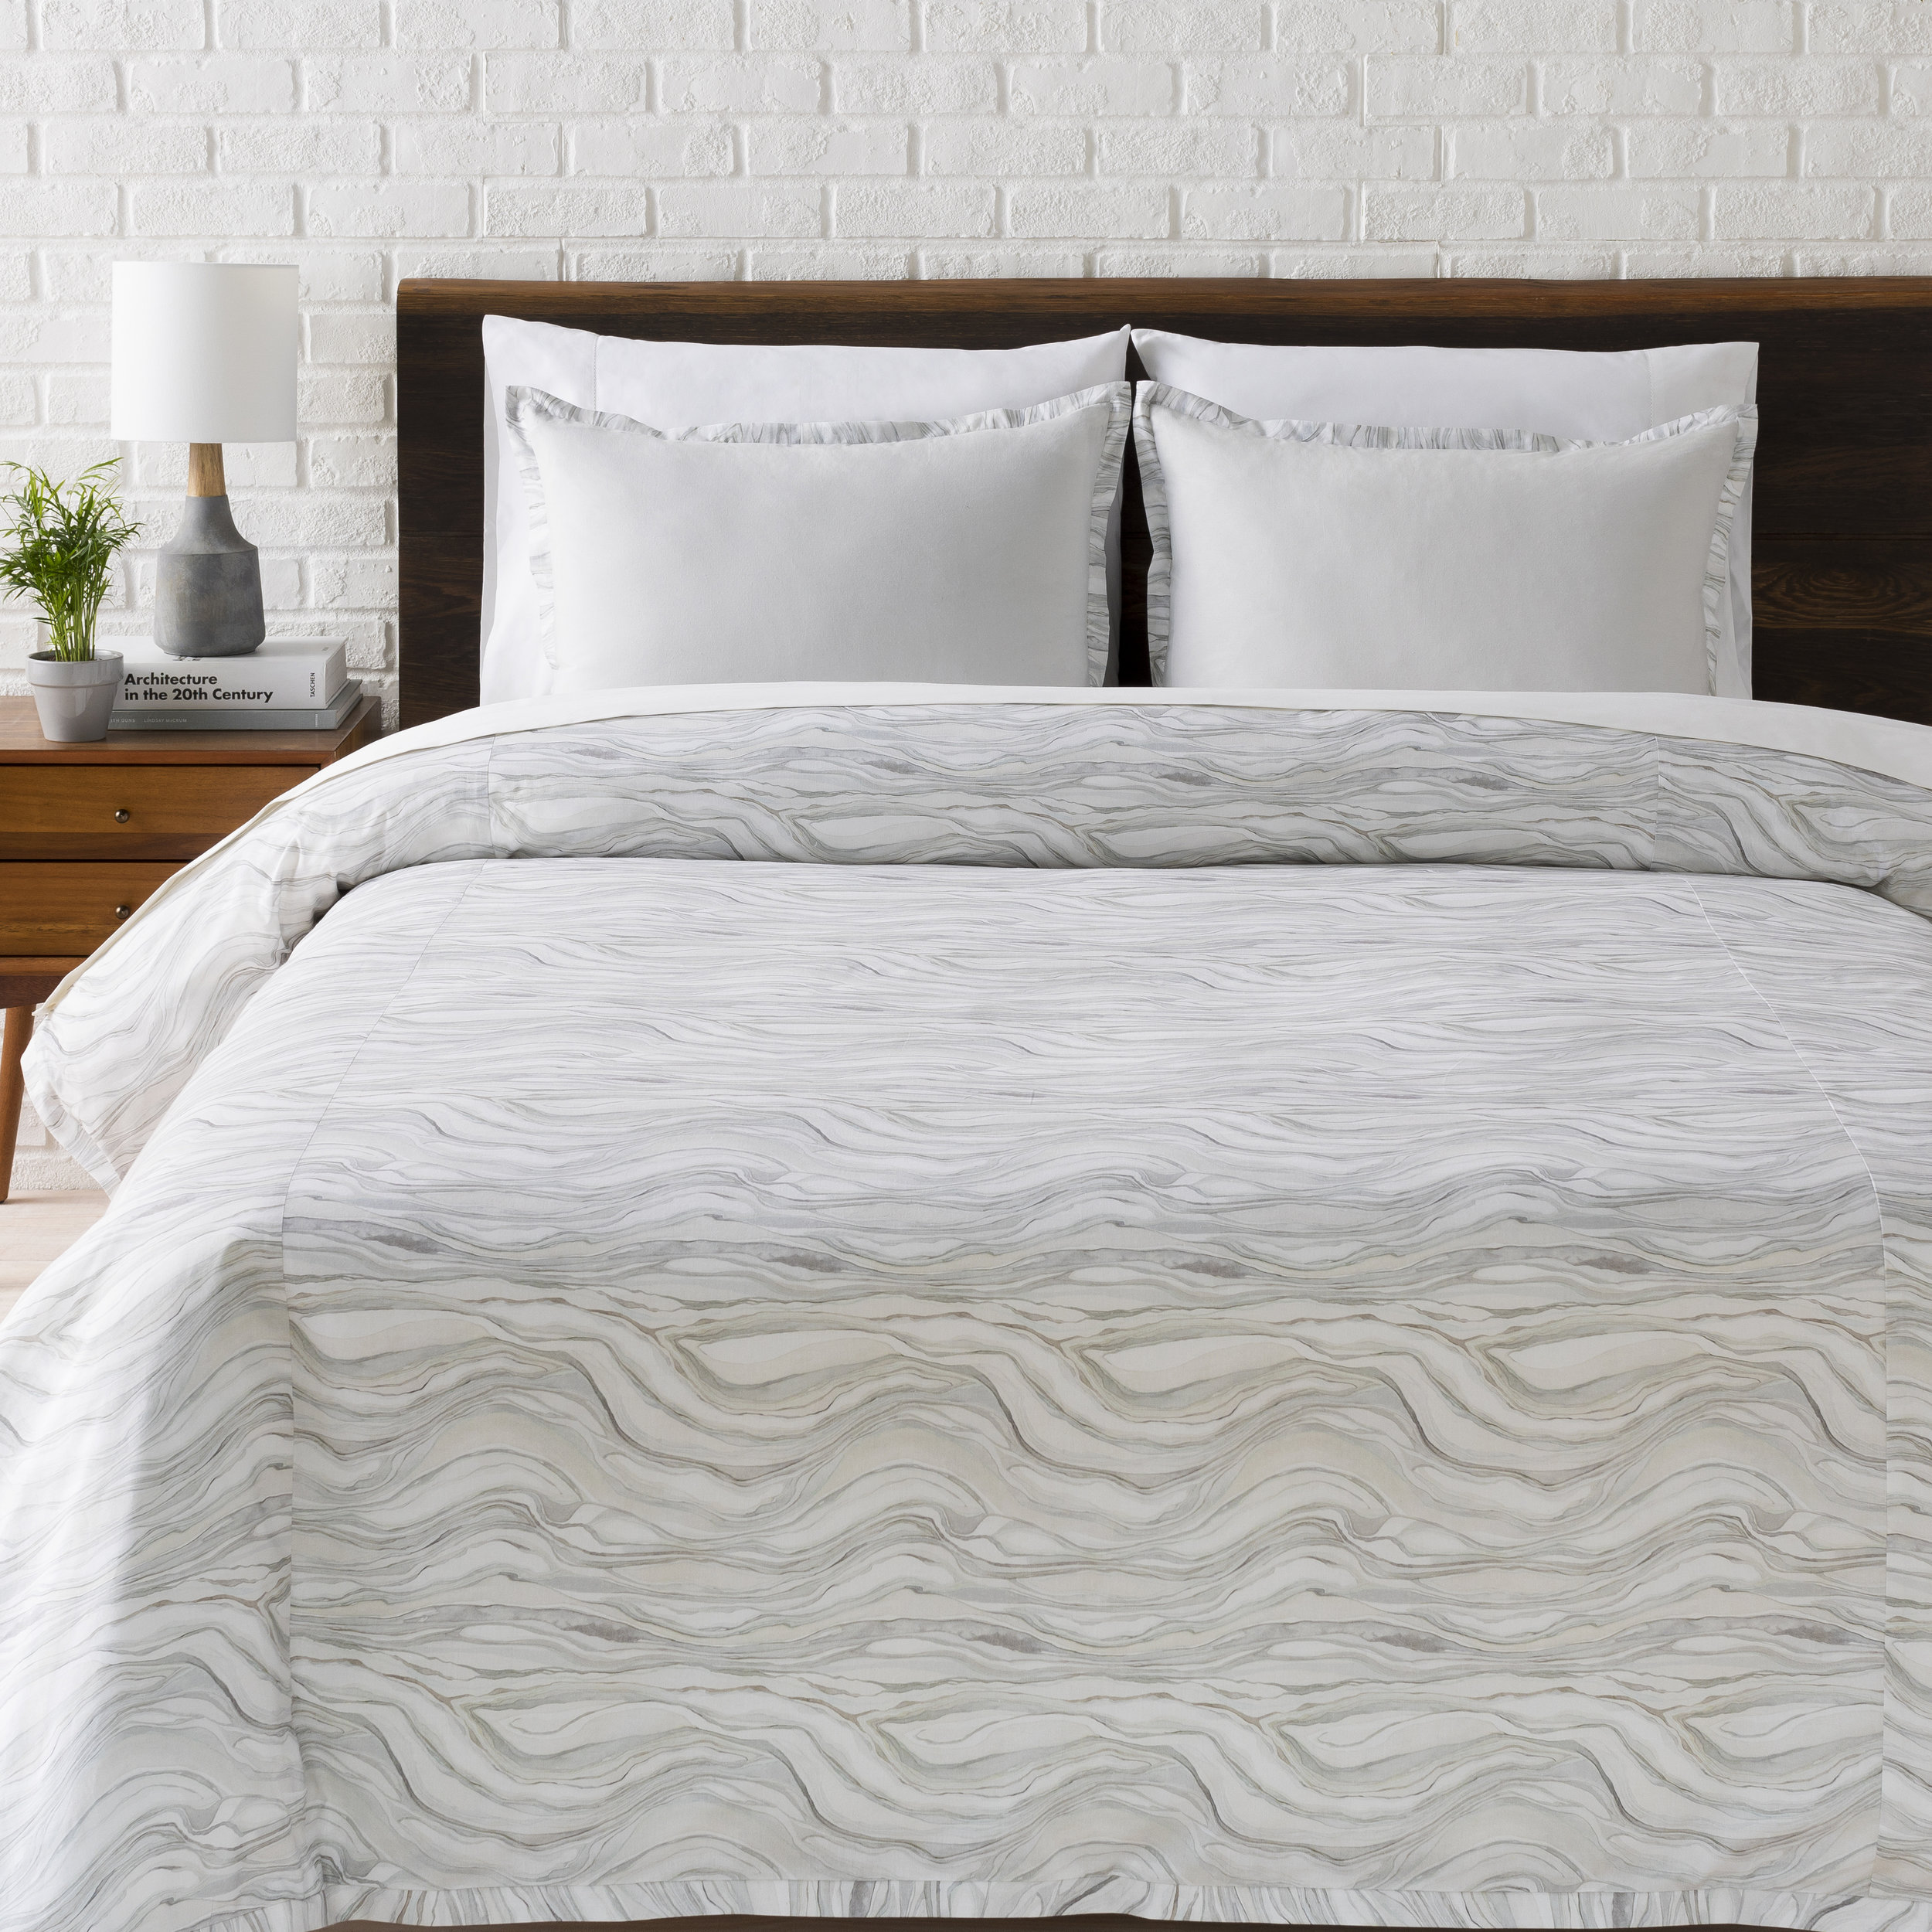 Shell Rummel Bedding